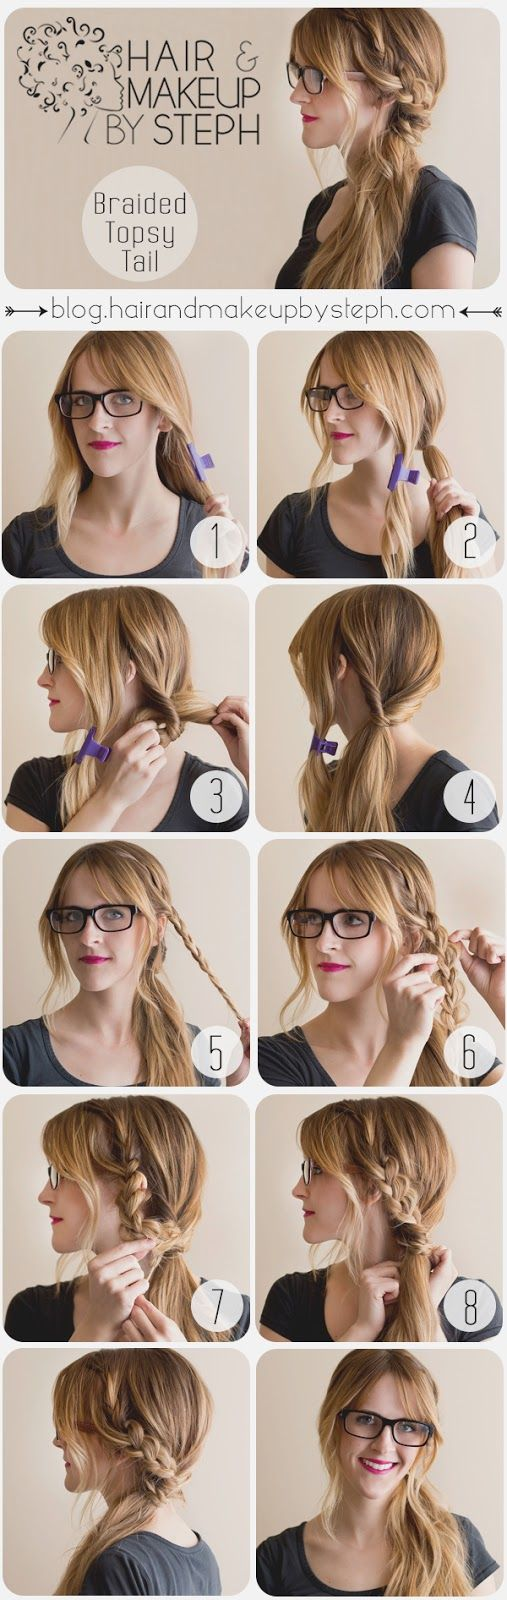 Top Pinner @Stephanie Close Brinkerhoff shows the Braided Topsy Tail HOW TO #Sephora #tresscode #DIY #hairstyles